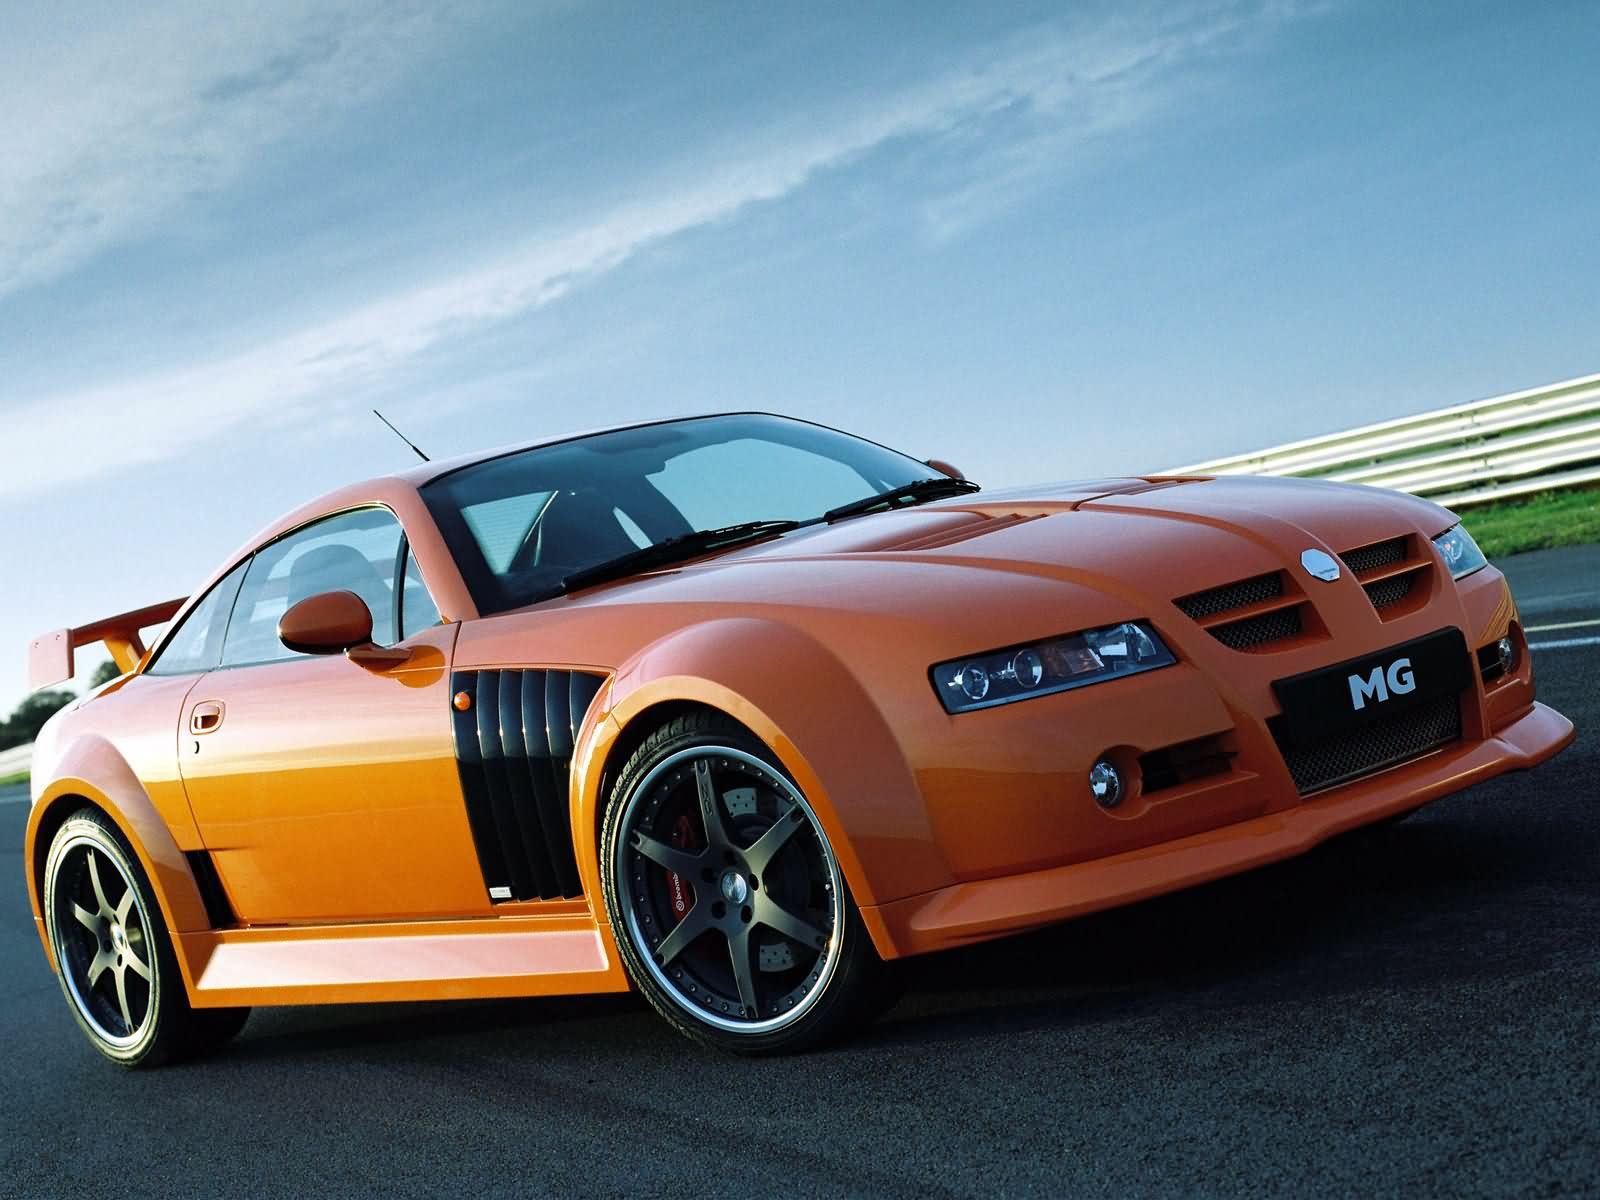 MG XPower SV-R photos - PhotoGallery with 10 pics| CarsBase.com